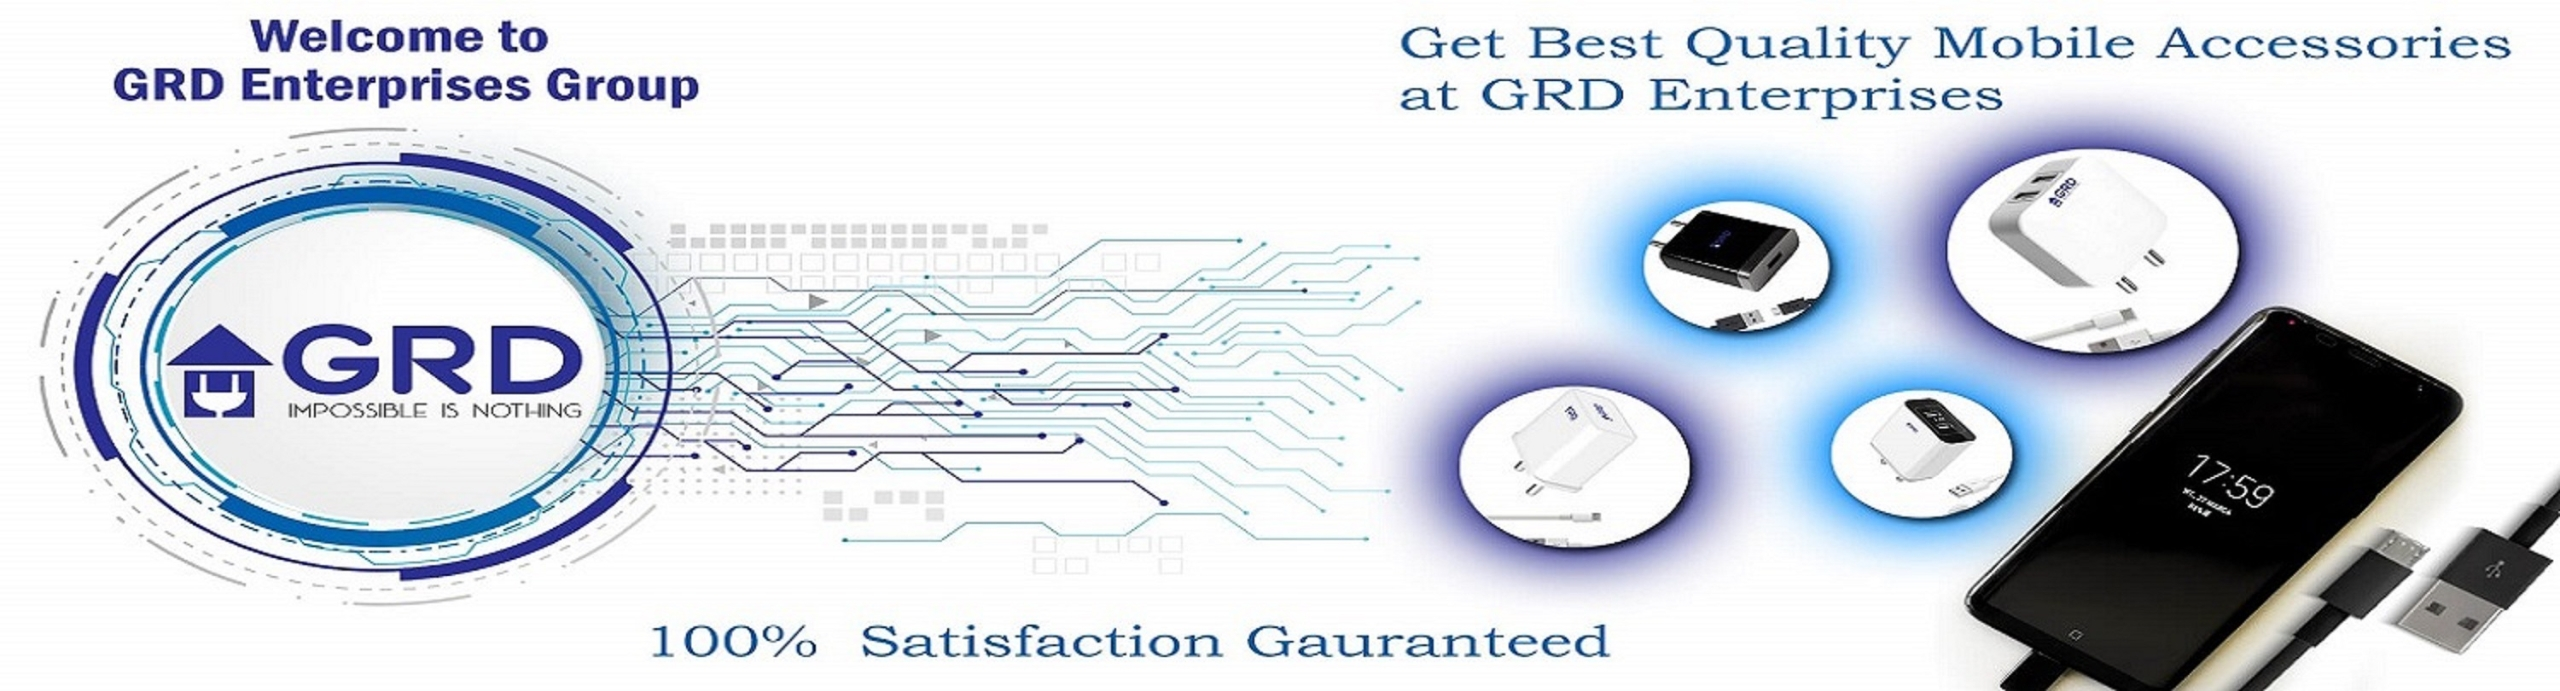 GRD Enterprises Group (@grdenterprisesgroup) Cover Image